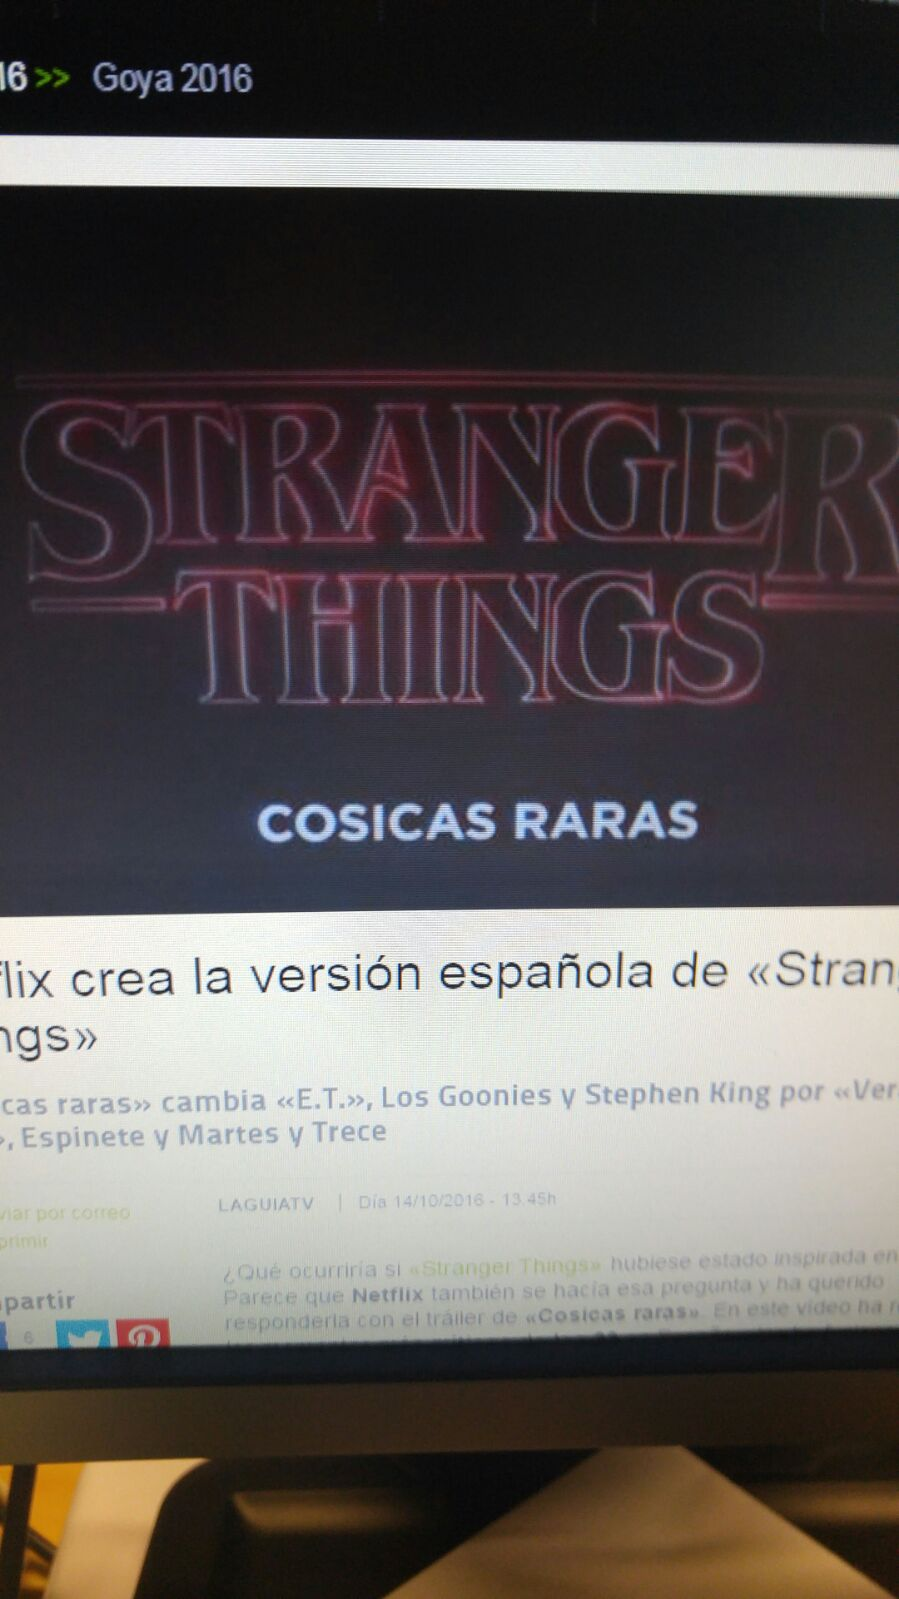 Cosicas raras: version española de stranger things